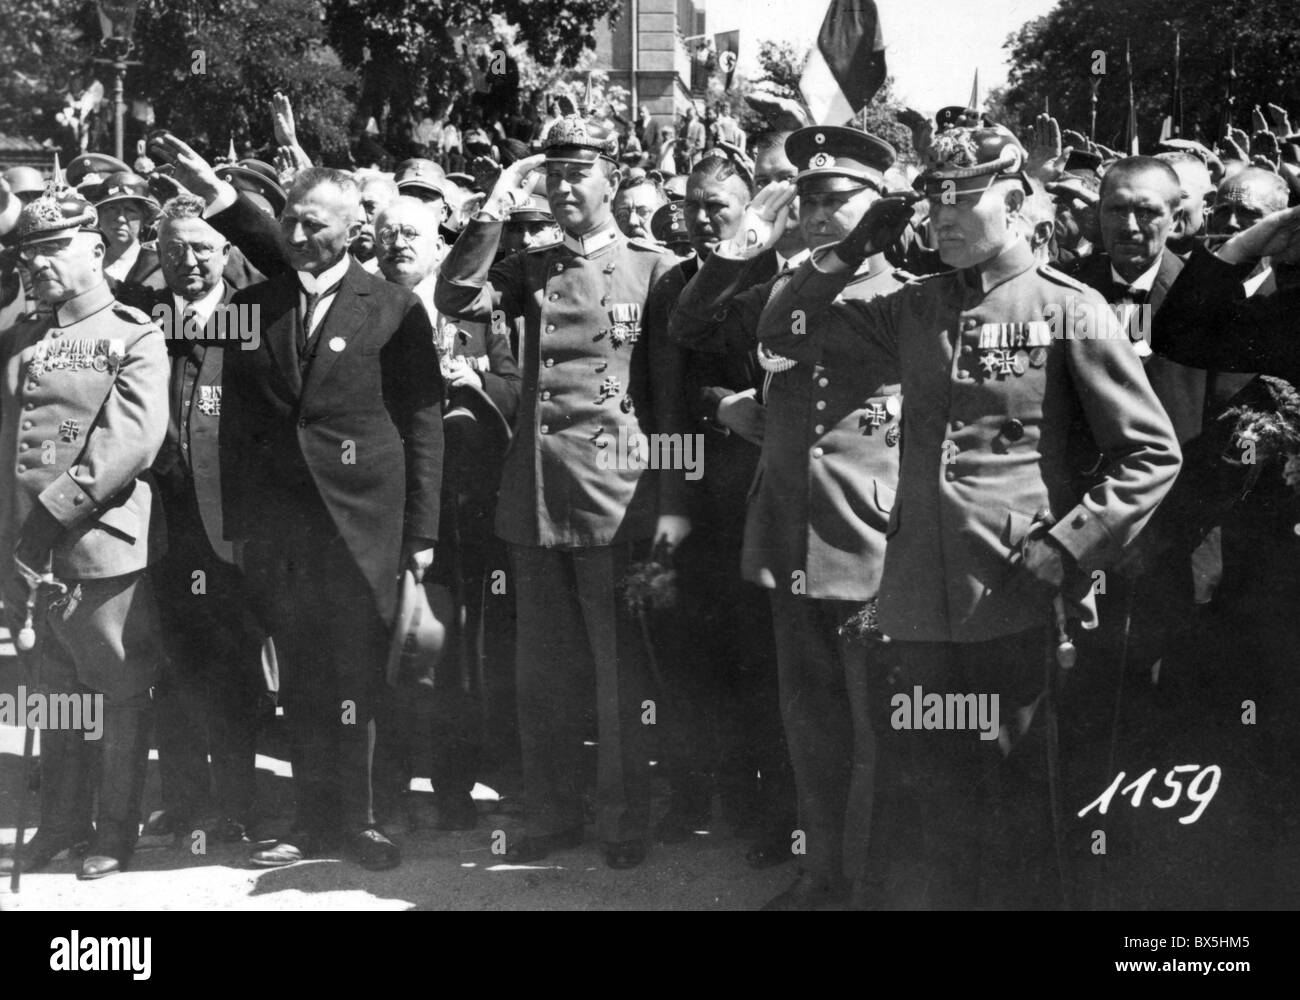 Nazism / National Socialism, parades, German World War One veterans during a parade, 1930s, saluting, Additional - Stock Image